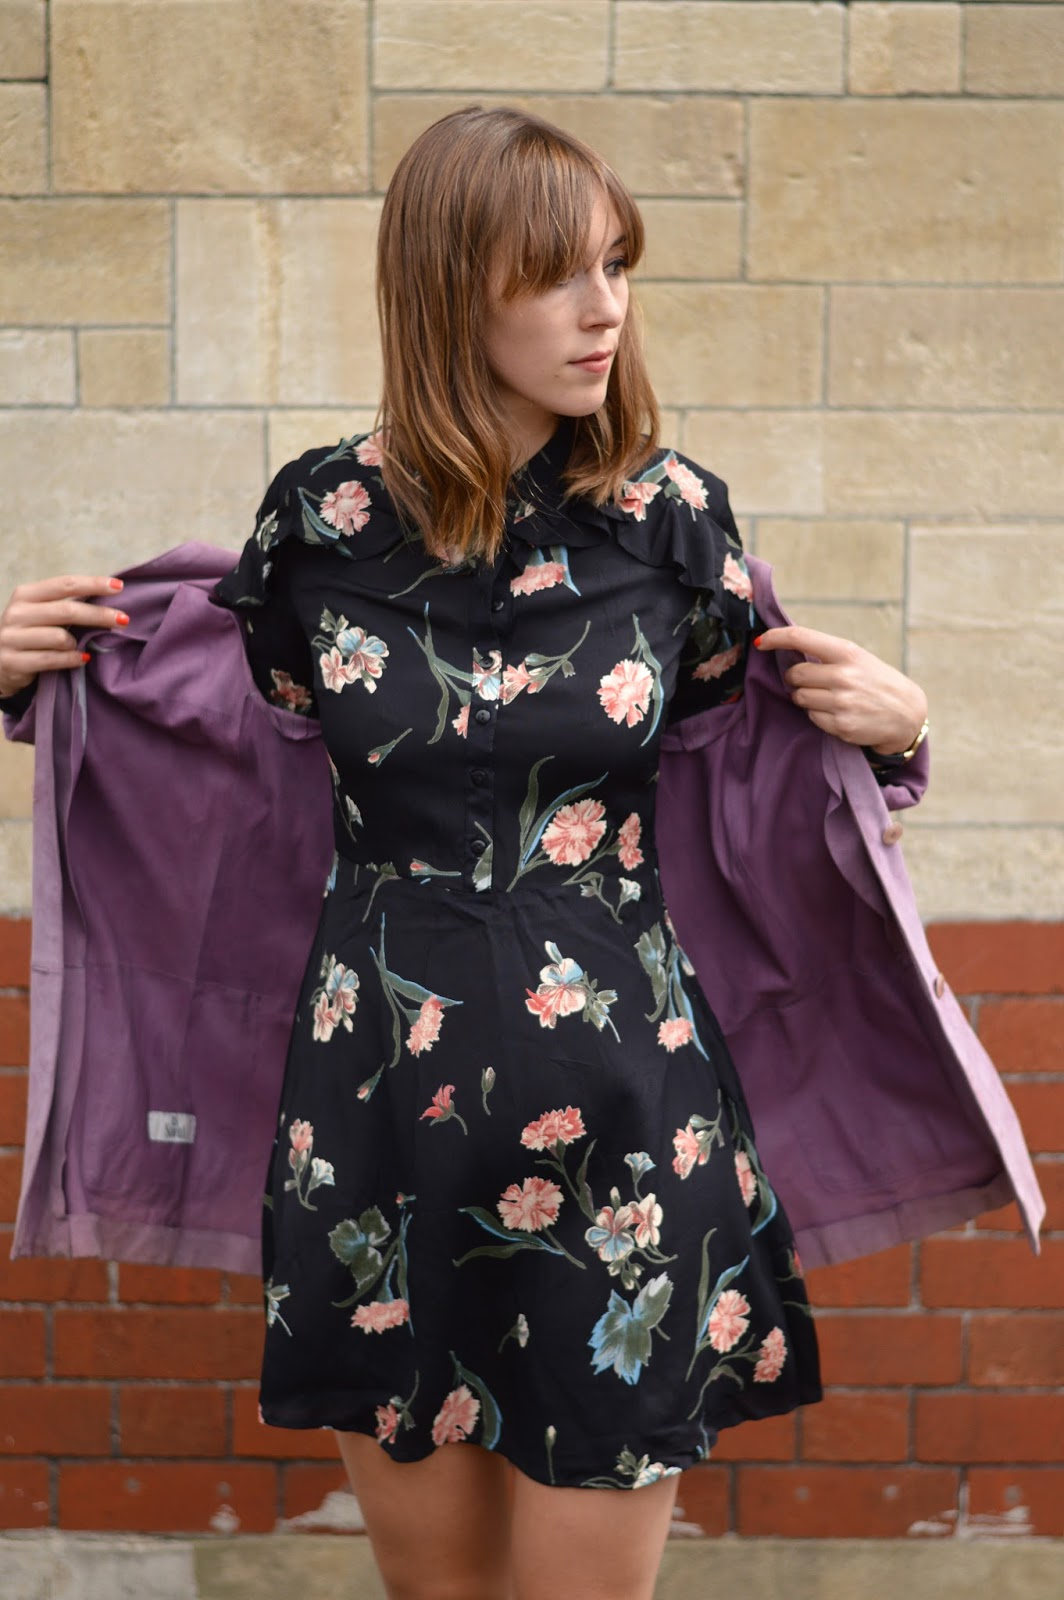 How to wear florals for autumn AW16